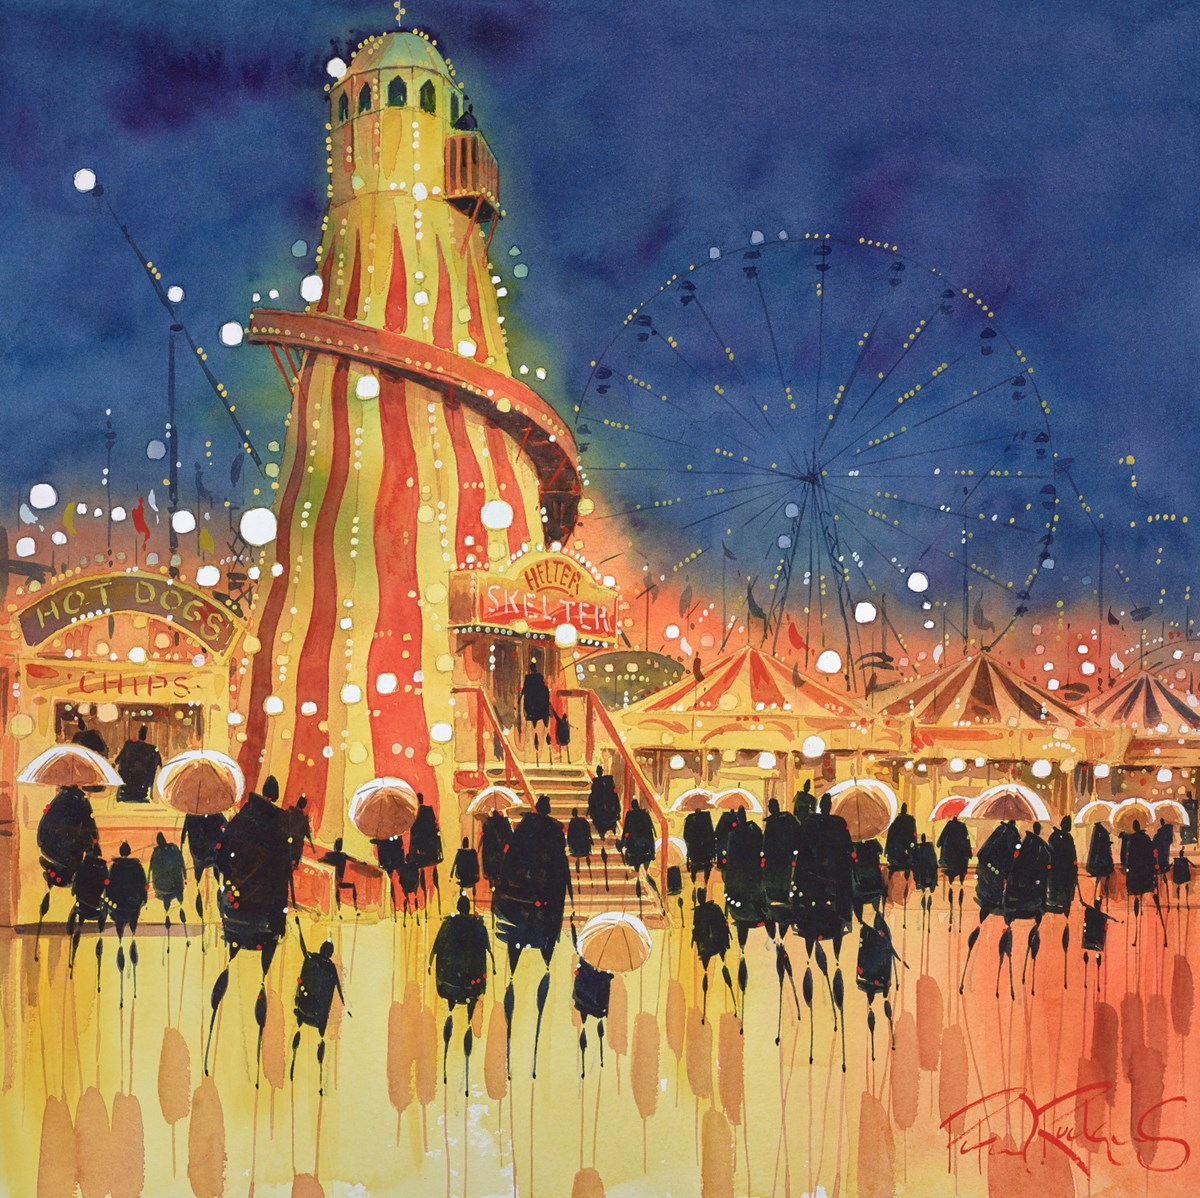 Helter Skelter by peter j rodgers -  sized 16x16 inches. Available from Whitewall Galleries